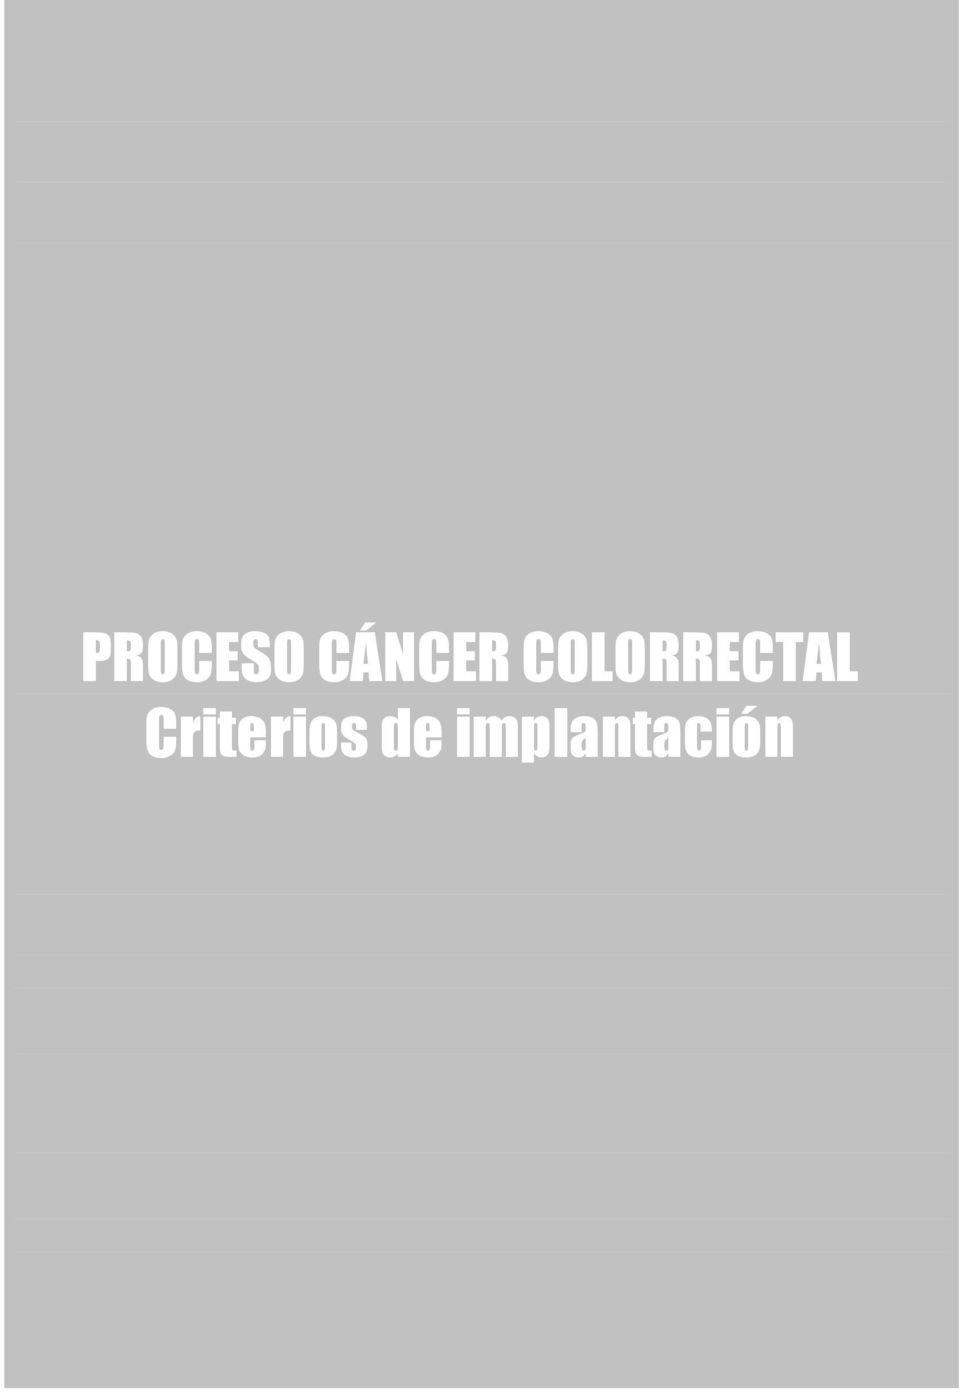 COLORRECTAL